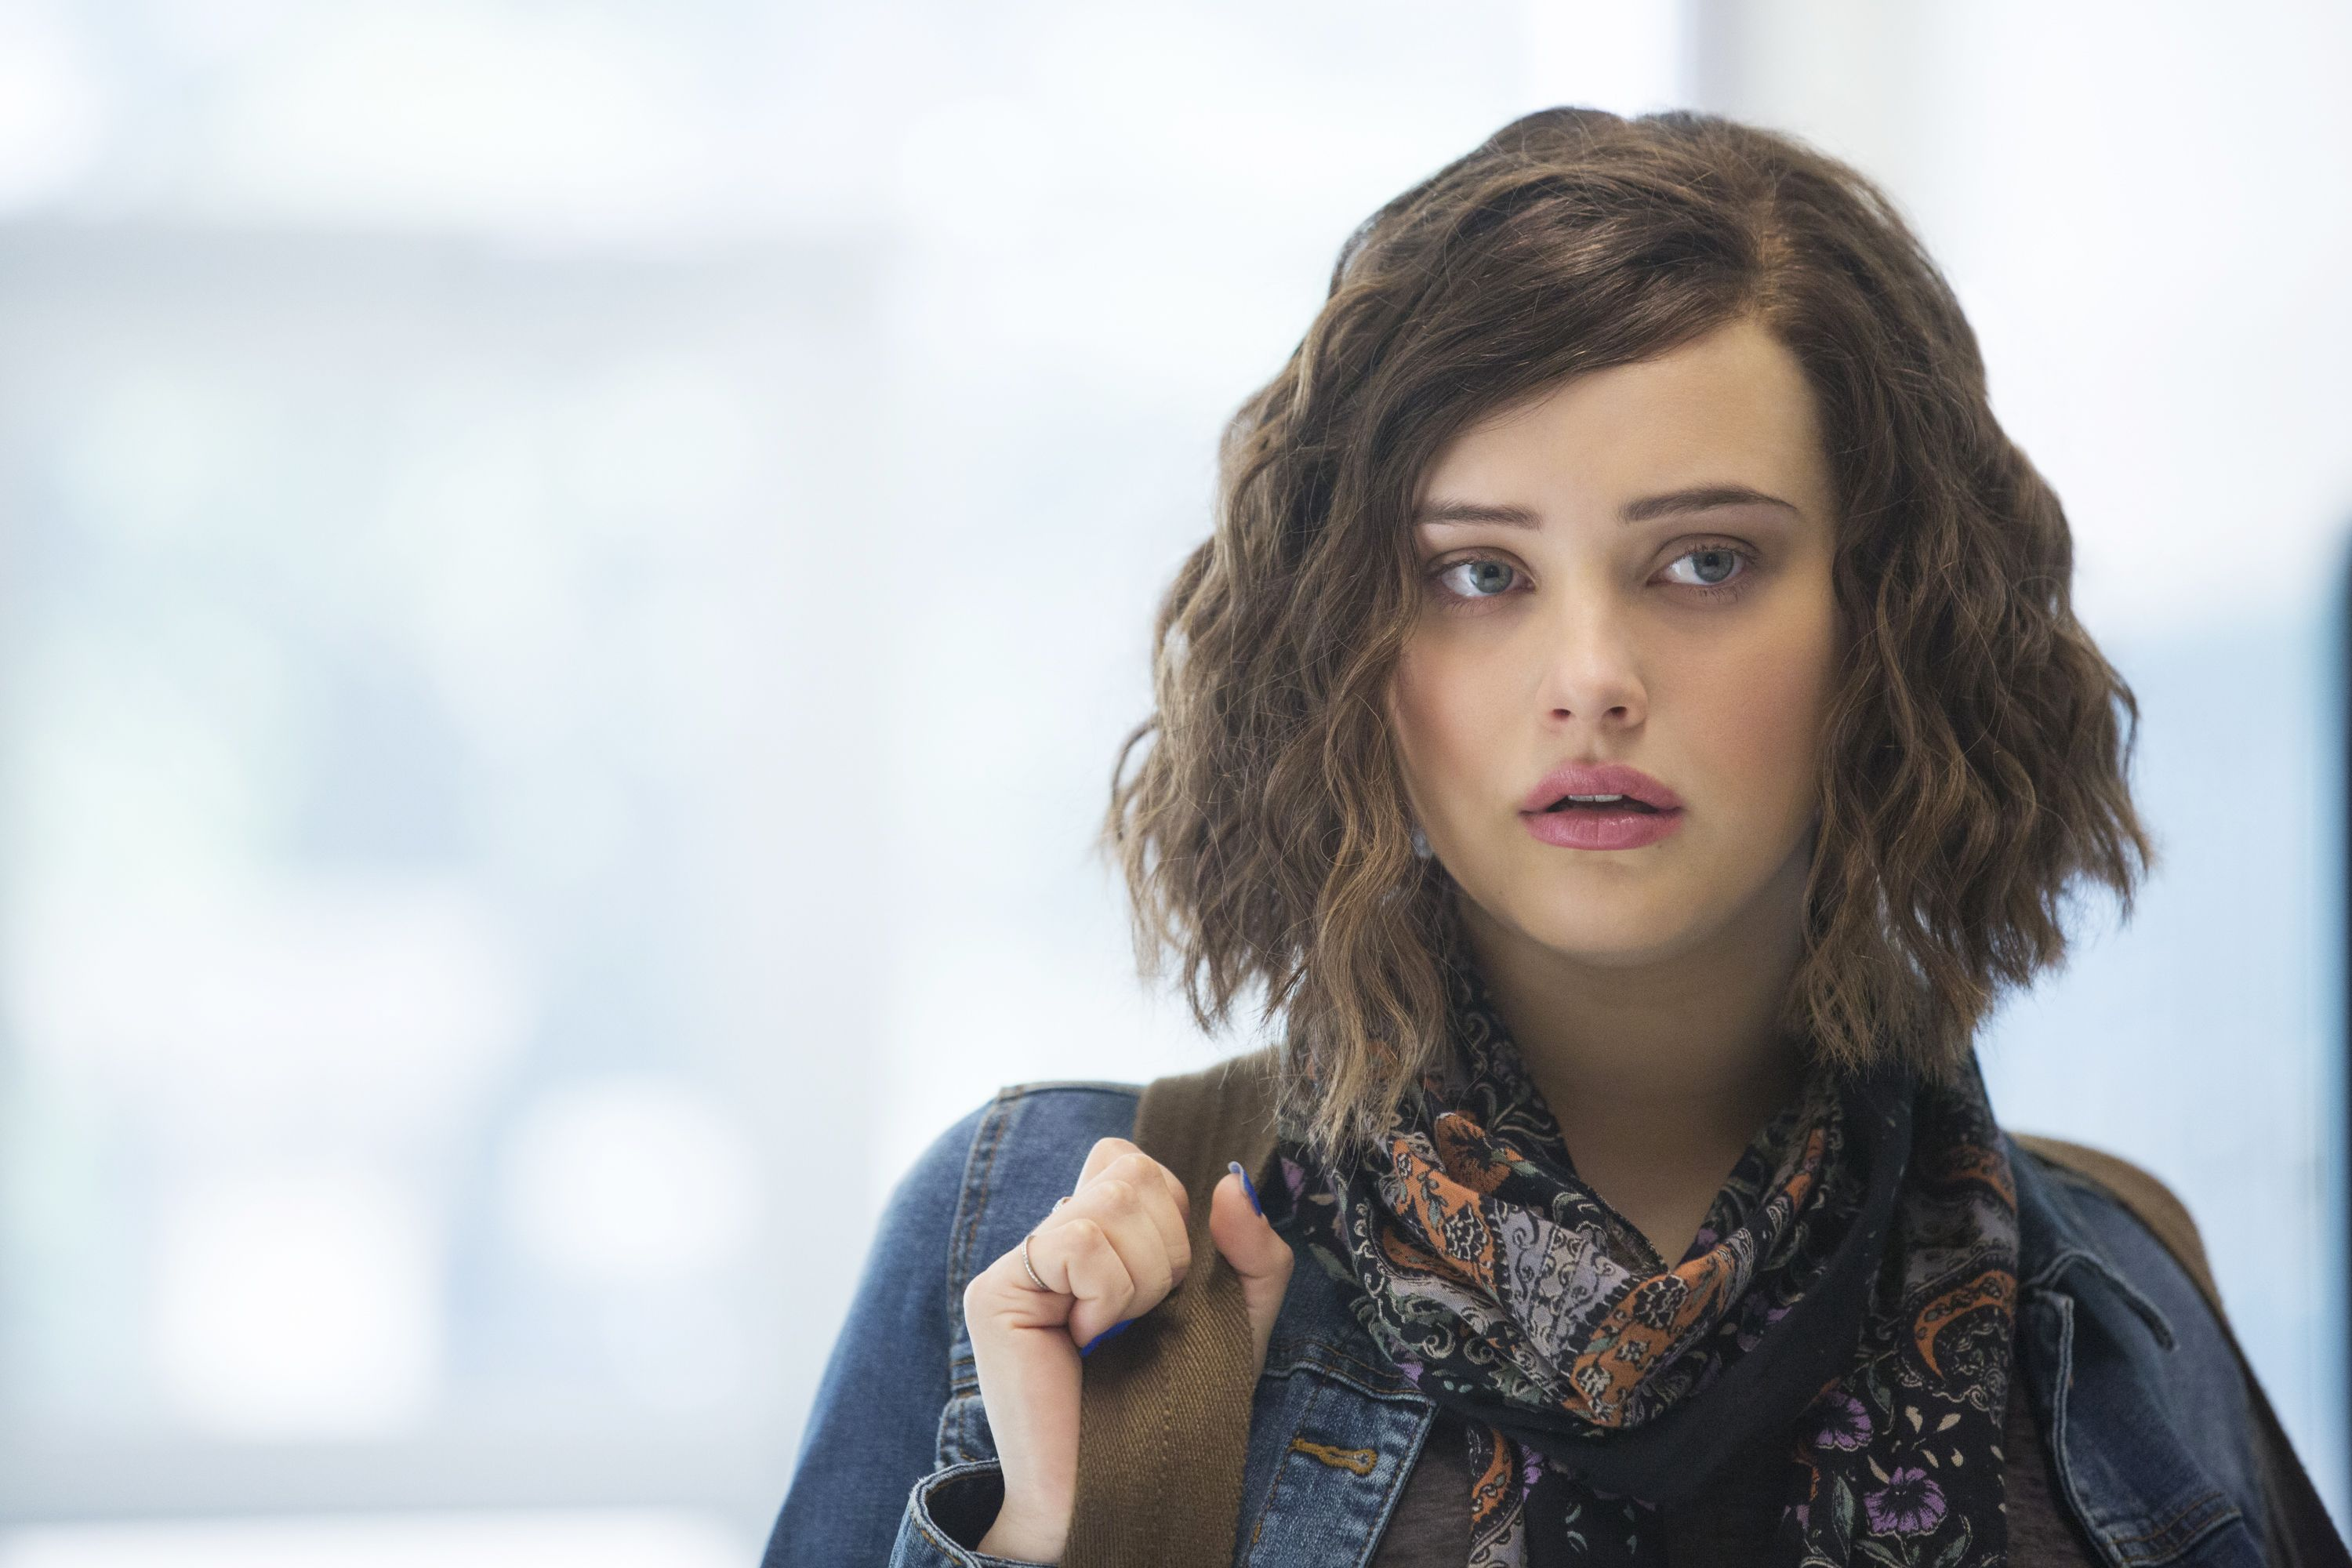 7 Reasons Why '13 Reasons Why' Is a Total Flop